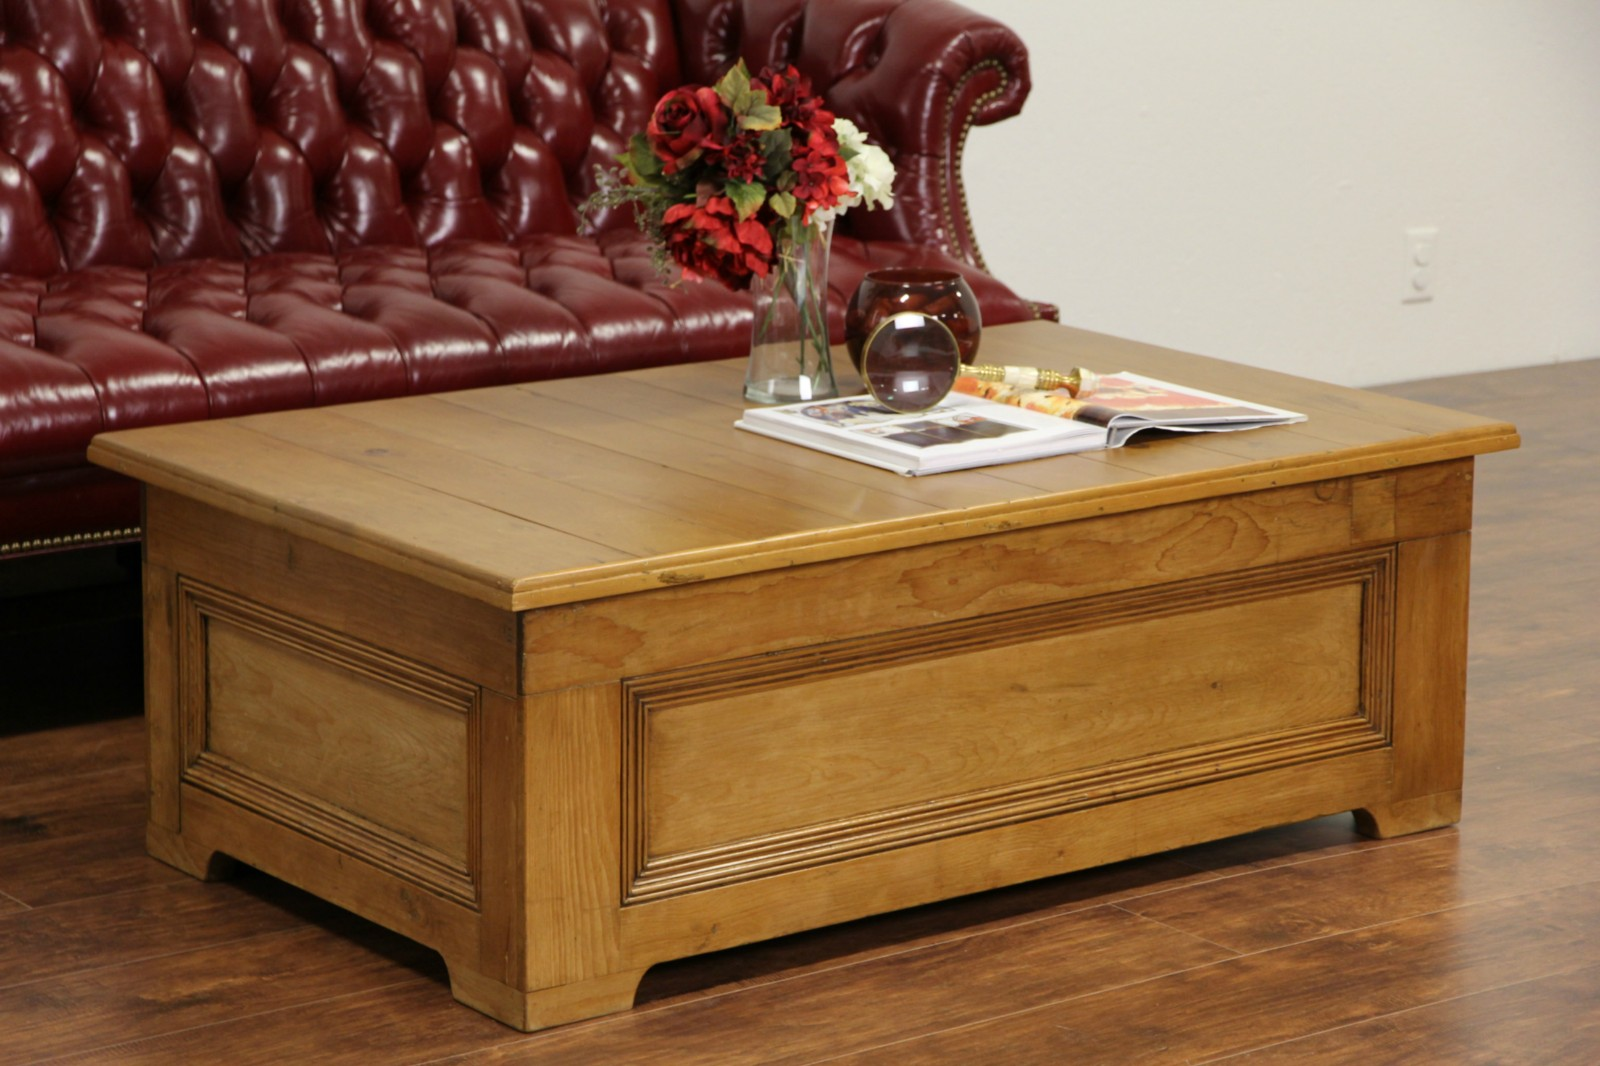 Country Pine Coffee Table With Storage Made From 1800 S Architectural Salvage